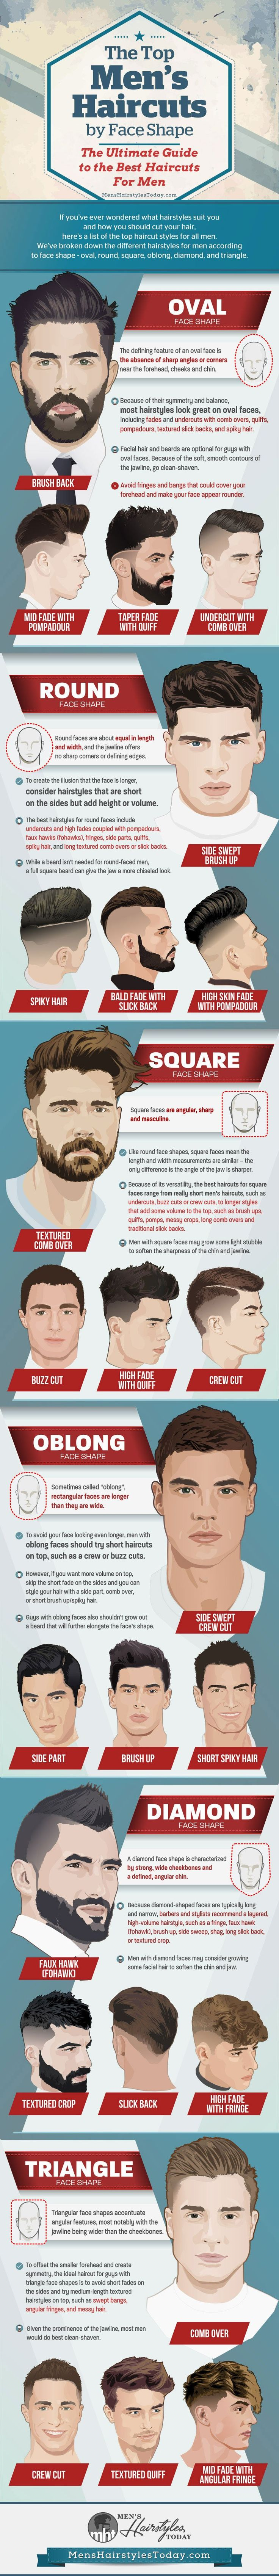 Haircuts for men near me  best kiểu tóc nam images on pinterest  hair cut man hair dos and